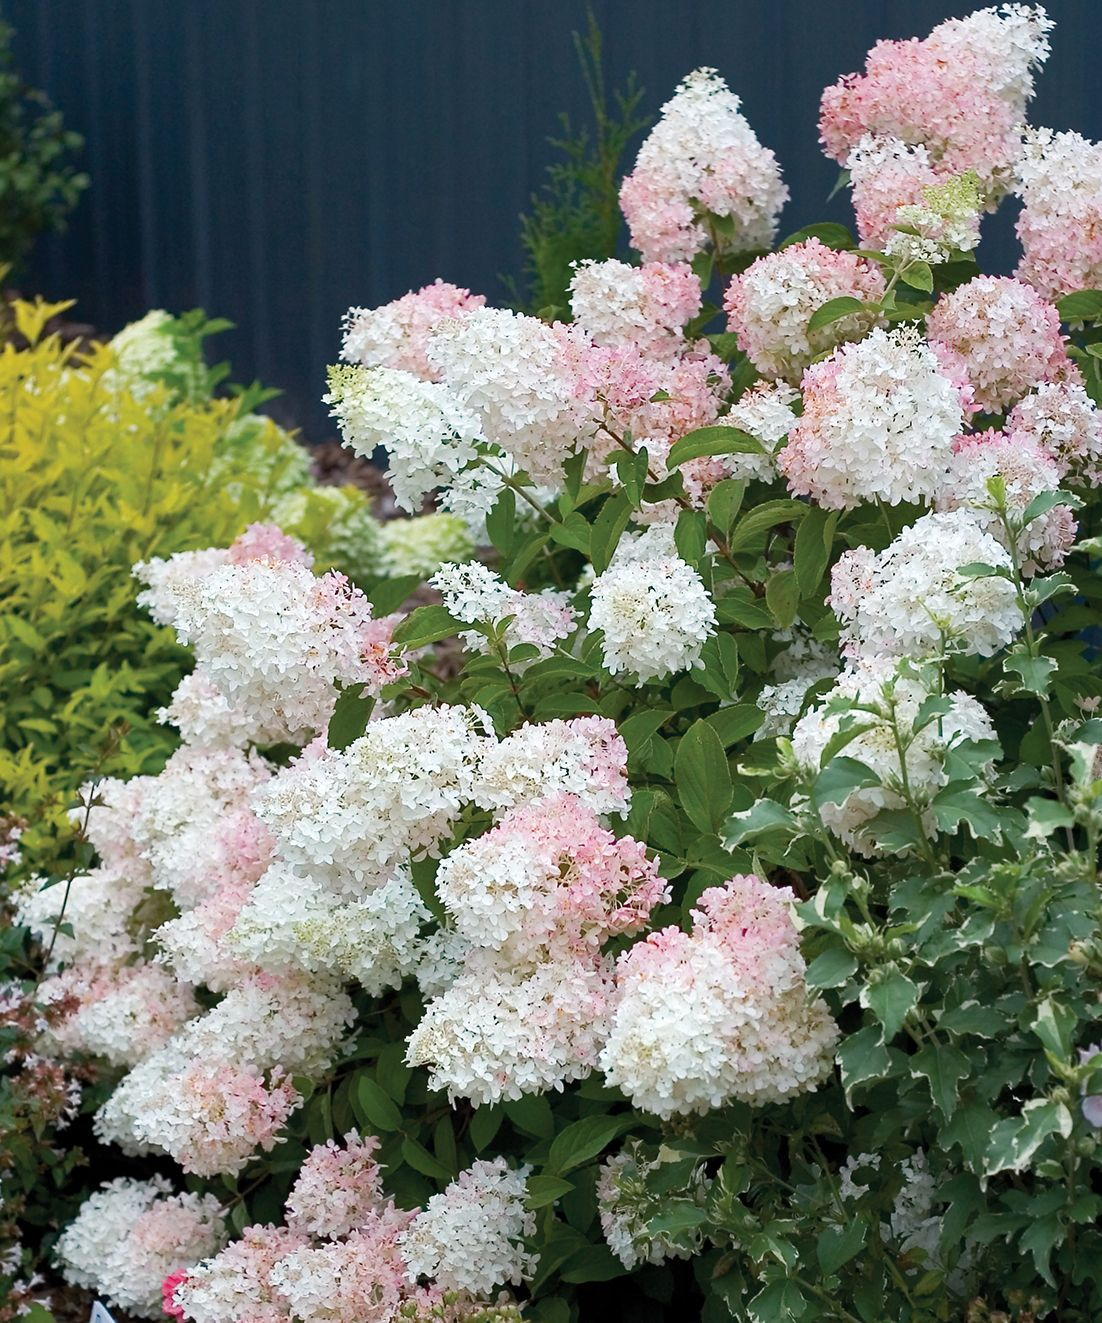 The Flowers Of Semi-dwarf 'Little Lamb Hydrangea Open Pure